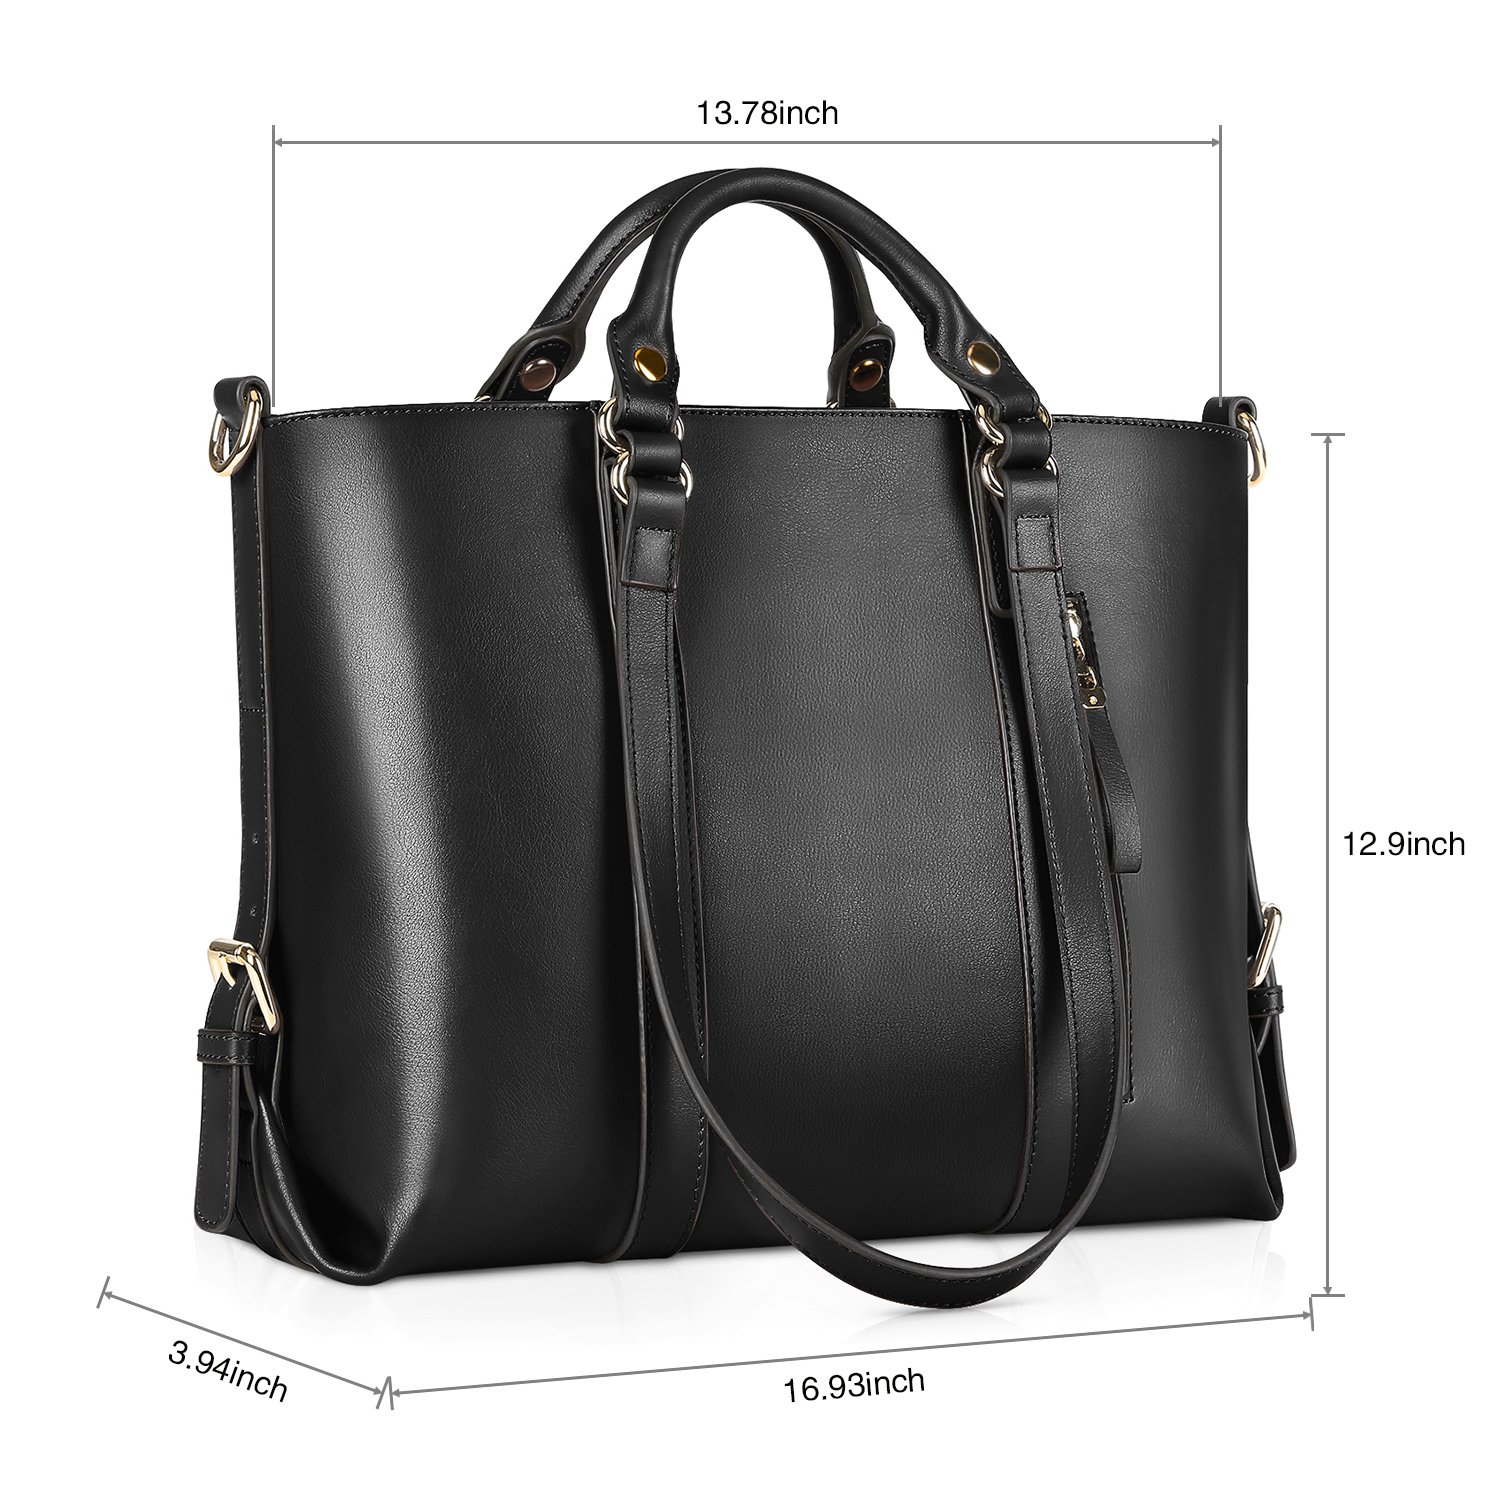 f88aaa86d39e Amazon.com  Kattee Urban Style 3-Way Women s Genuine Leather Shoulder Tote  Bag (Black)  Clothing